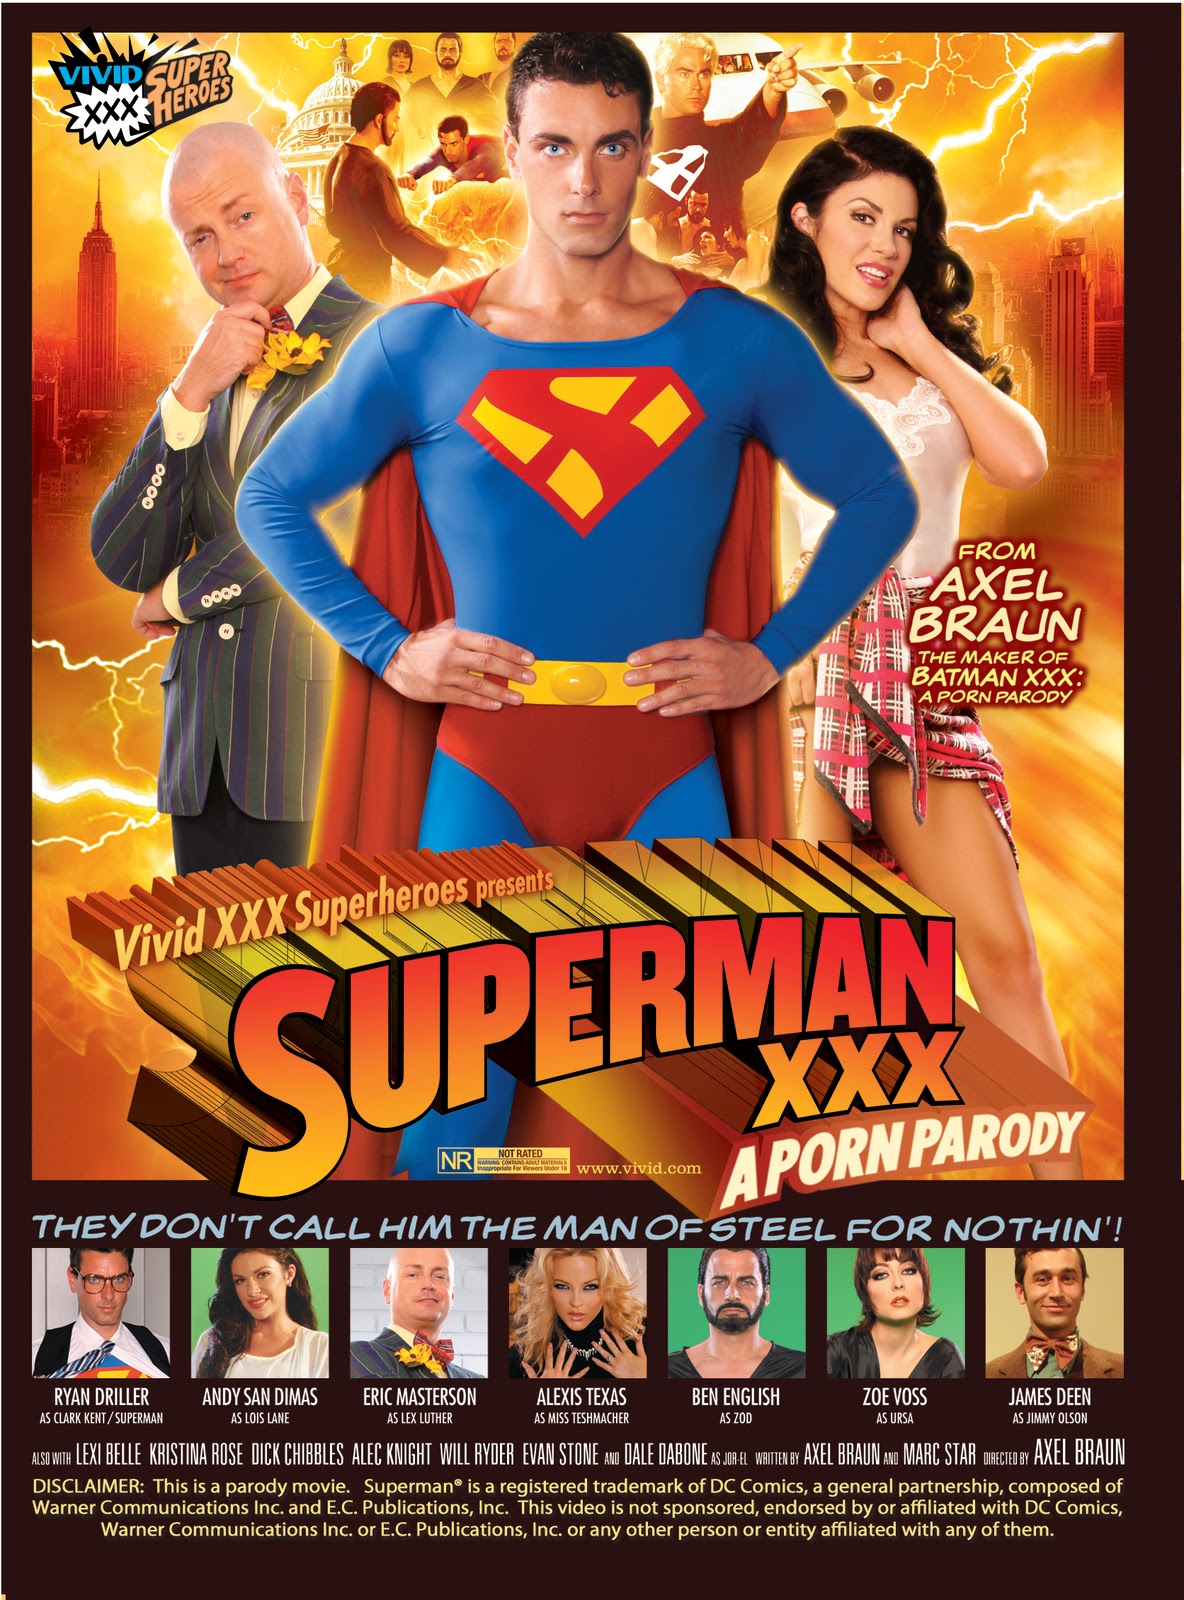 Superman XXX Porn Parody Cover ... 414 383 8330) the largest gay club in Milwaukee, it's actually the ...